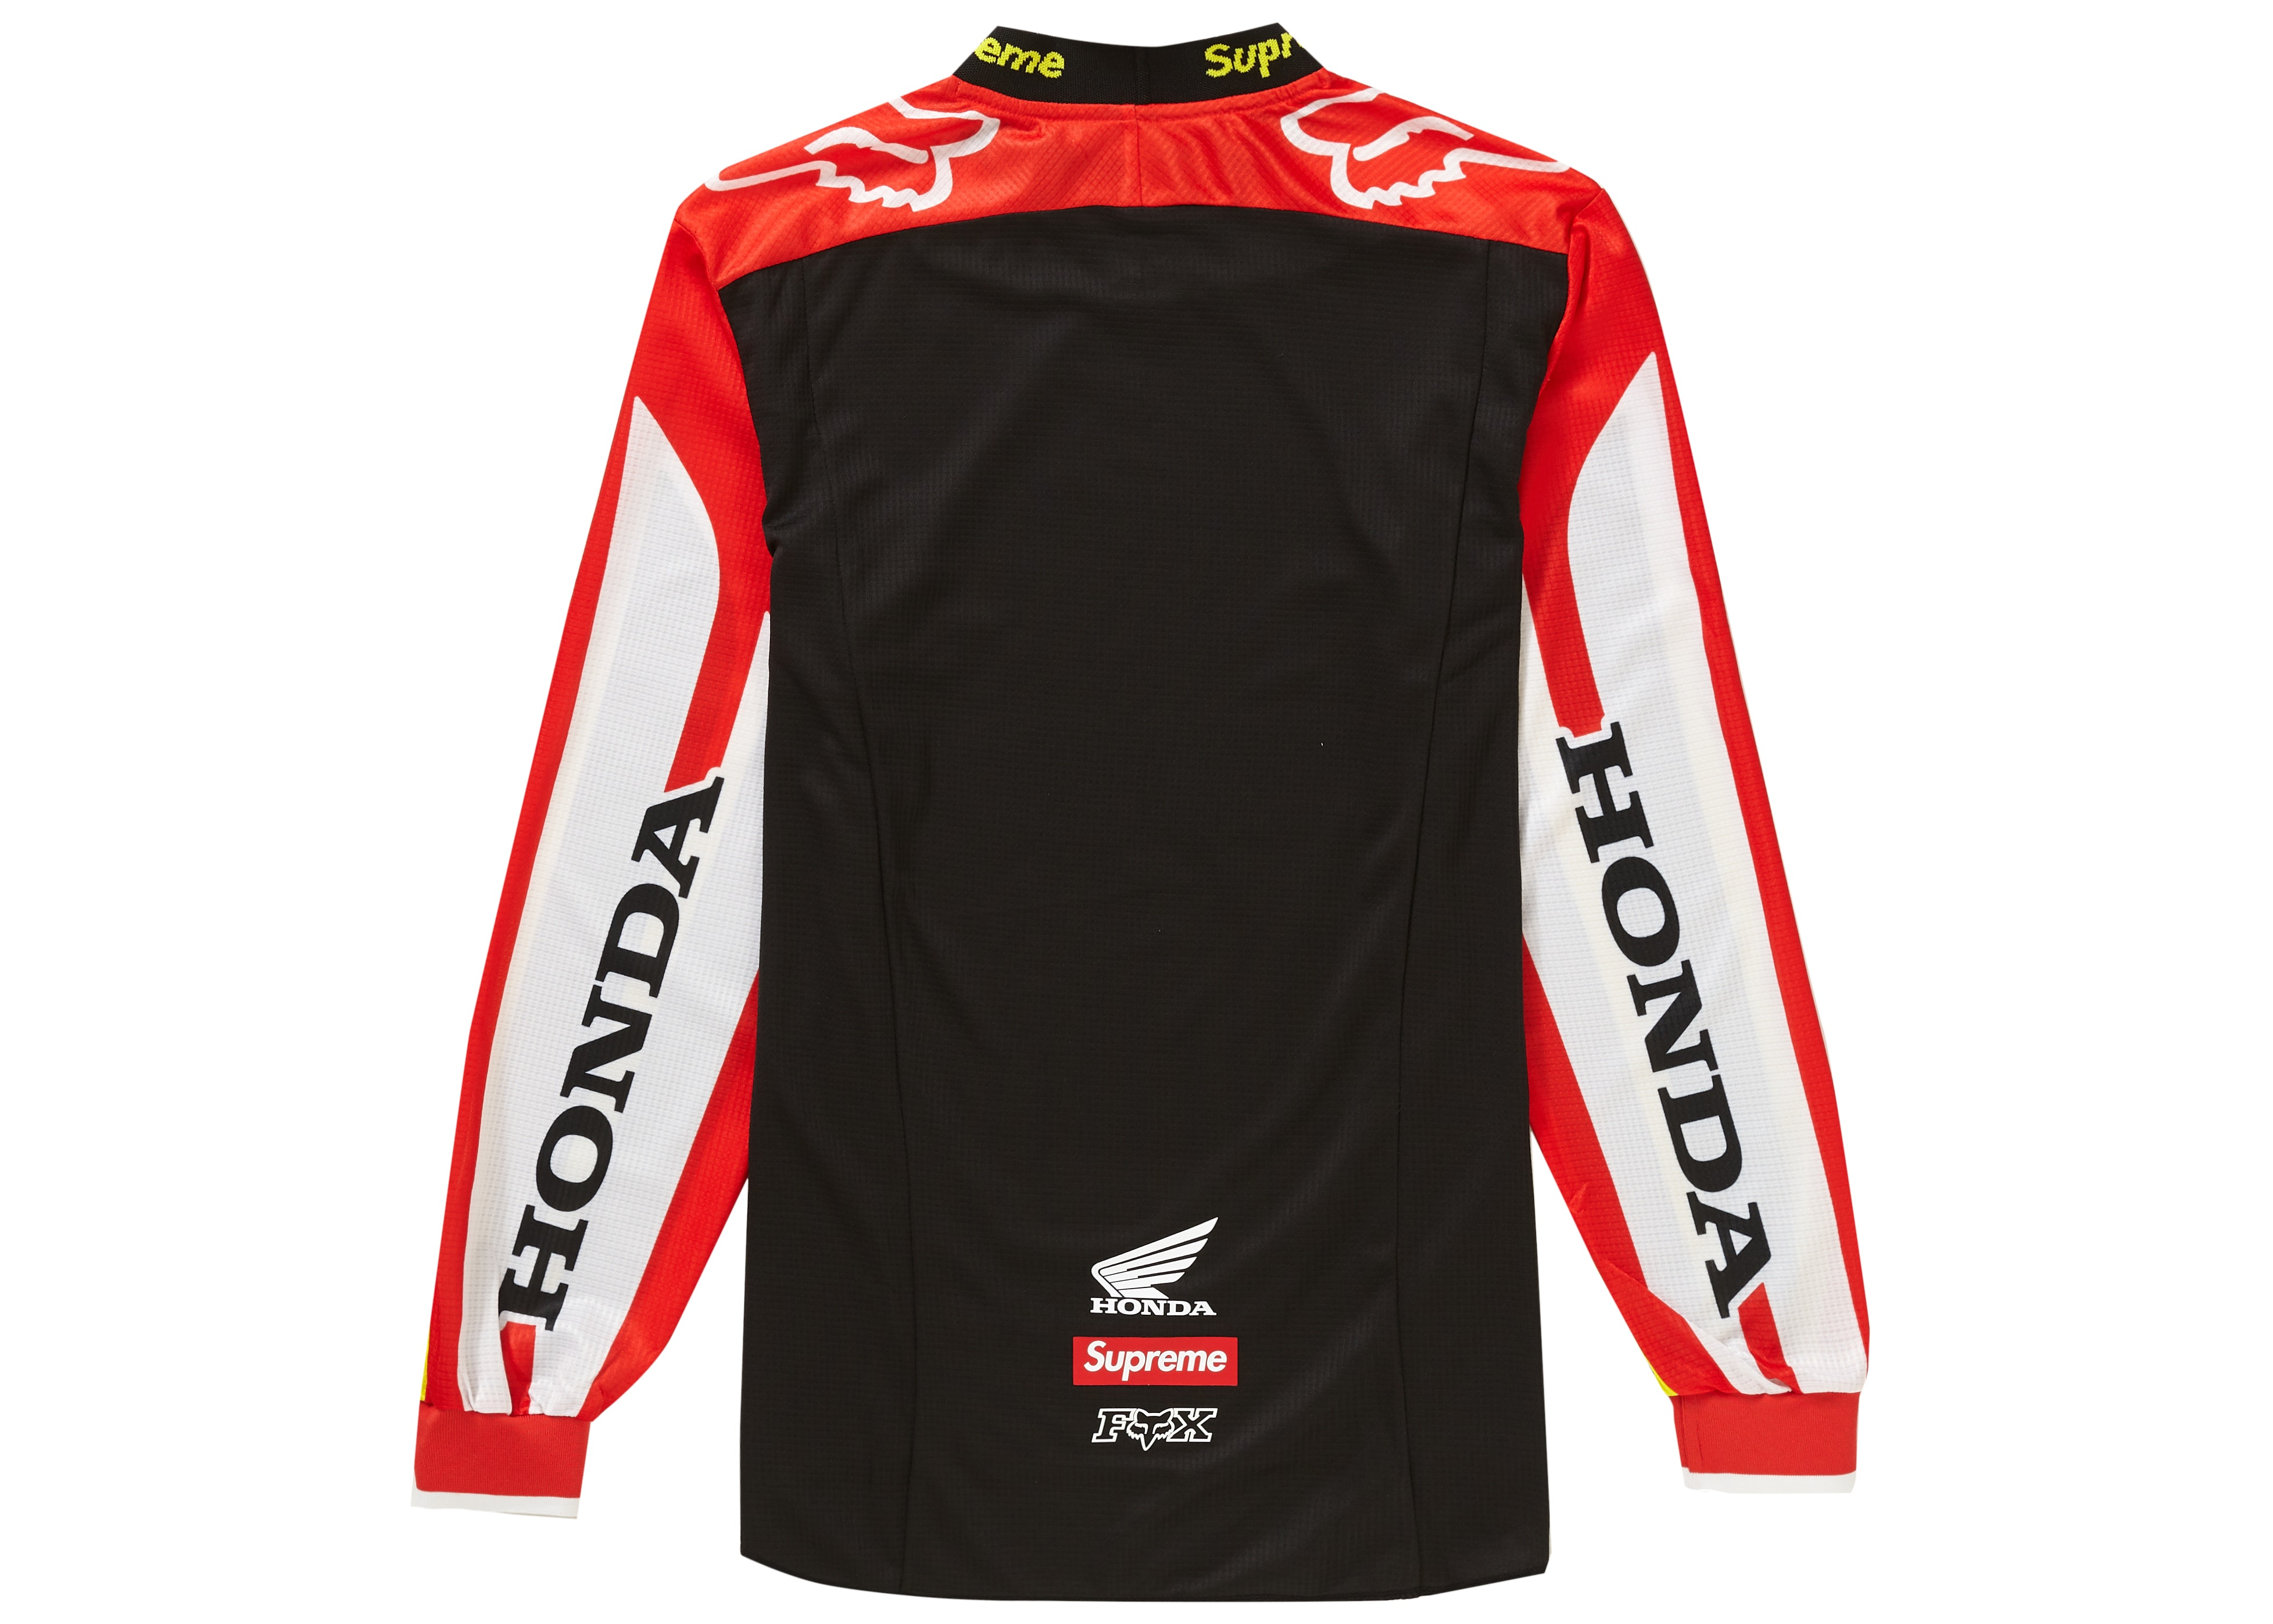 SUBROSA BMX RACING JERSEY LONG SLEEVE FLY OBEY SUPREME SHADOW CONSPIRACY NEW